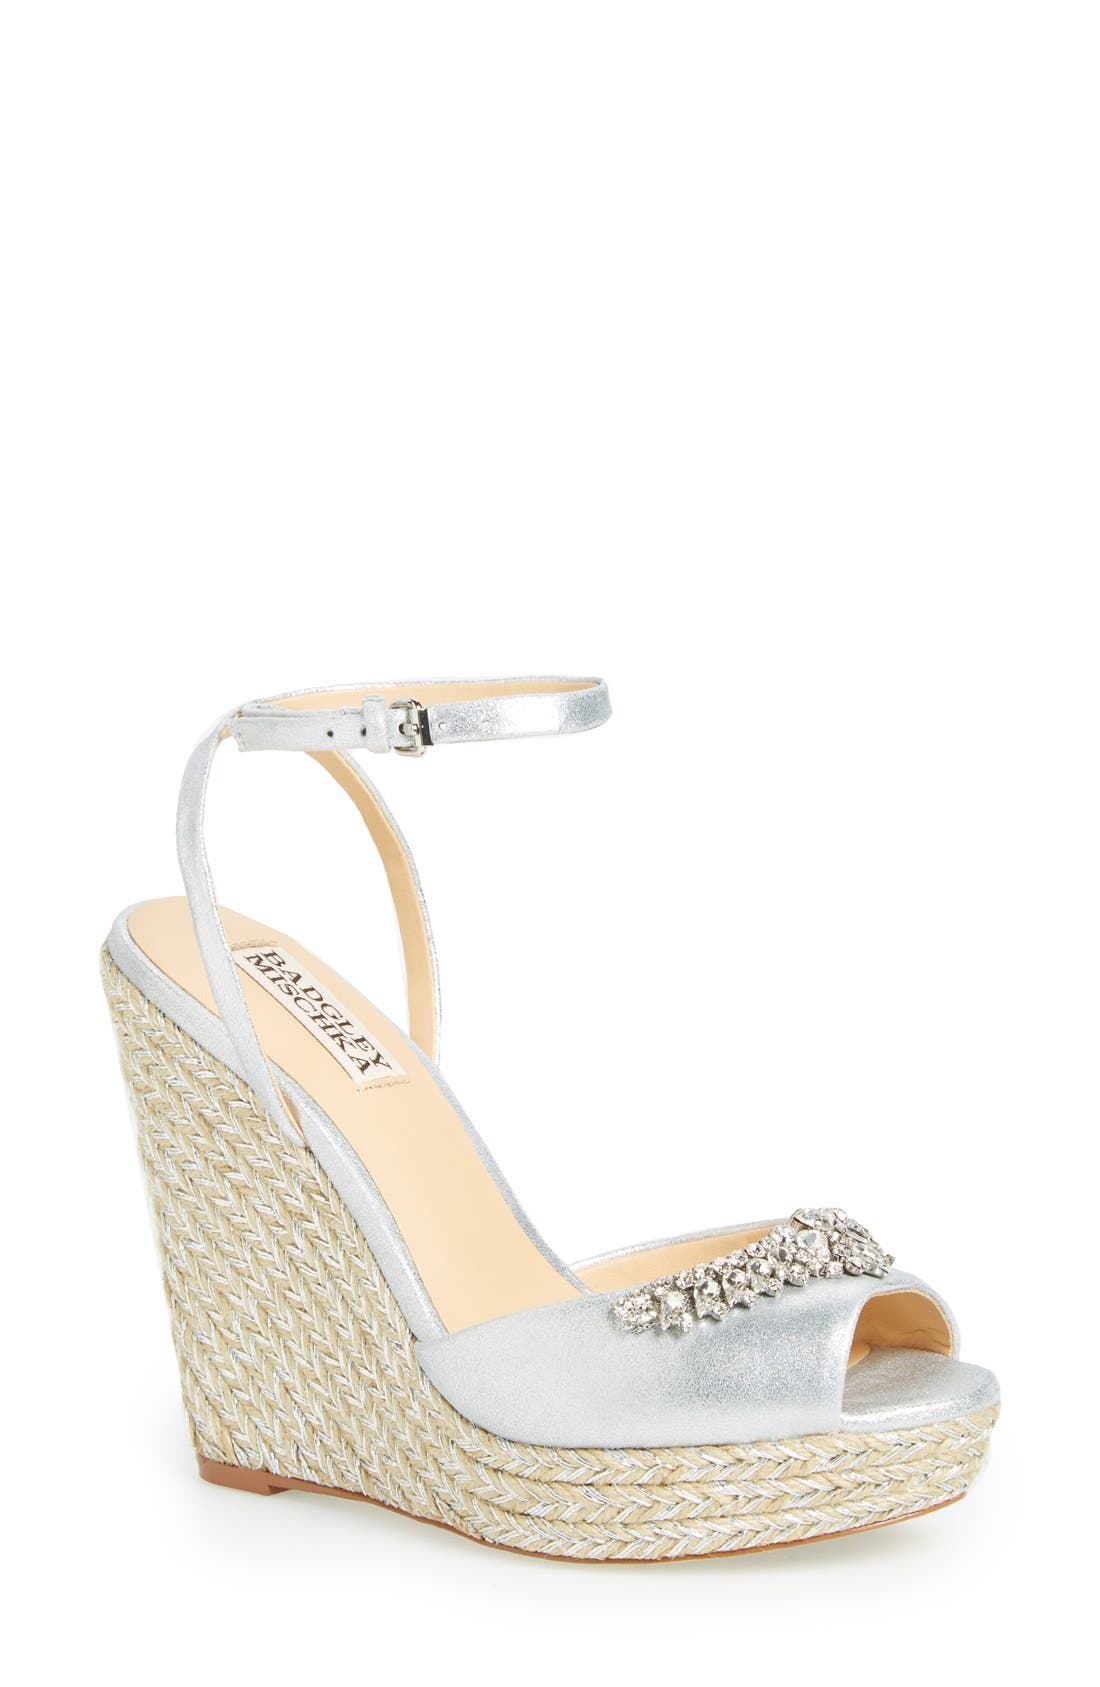 'Annabel' Crystal Embellished Wedge,                             Main thumbnail 1, color,                             040